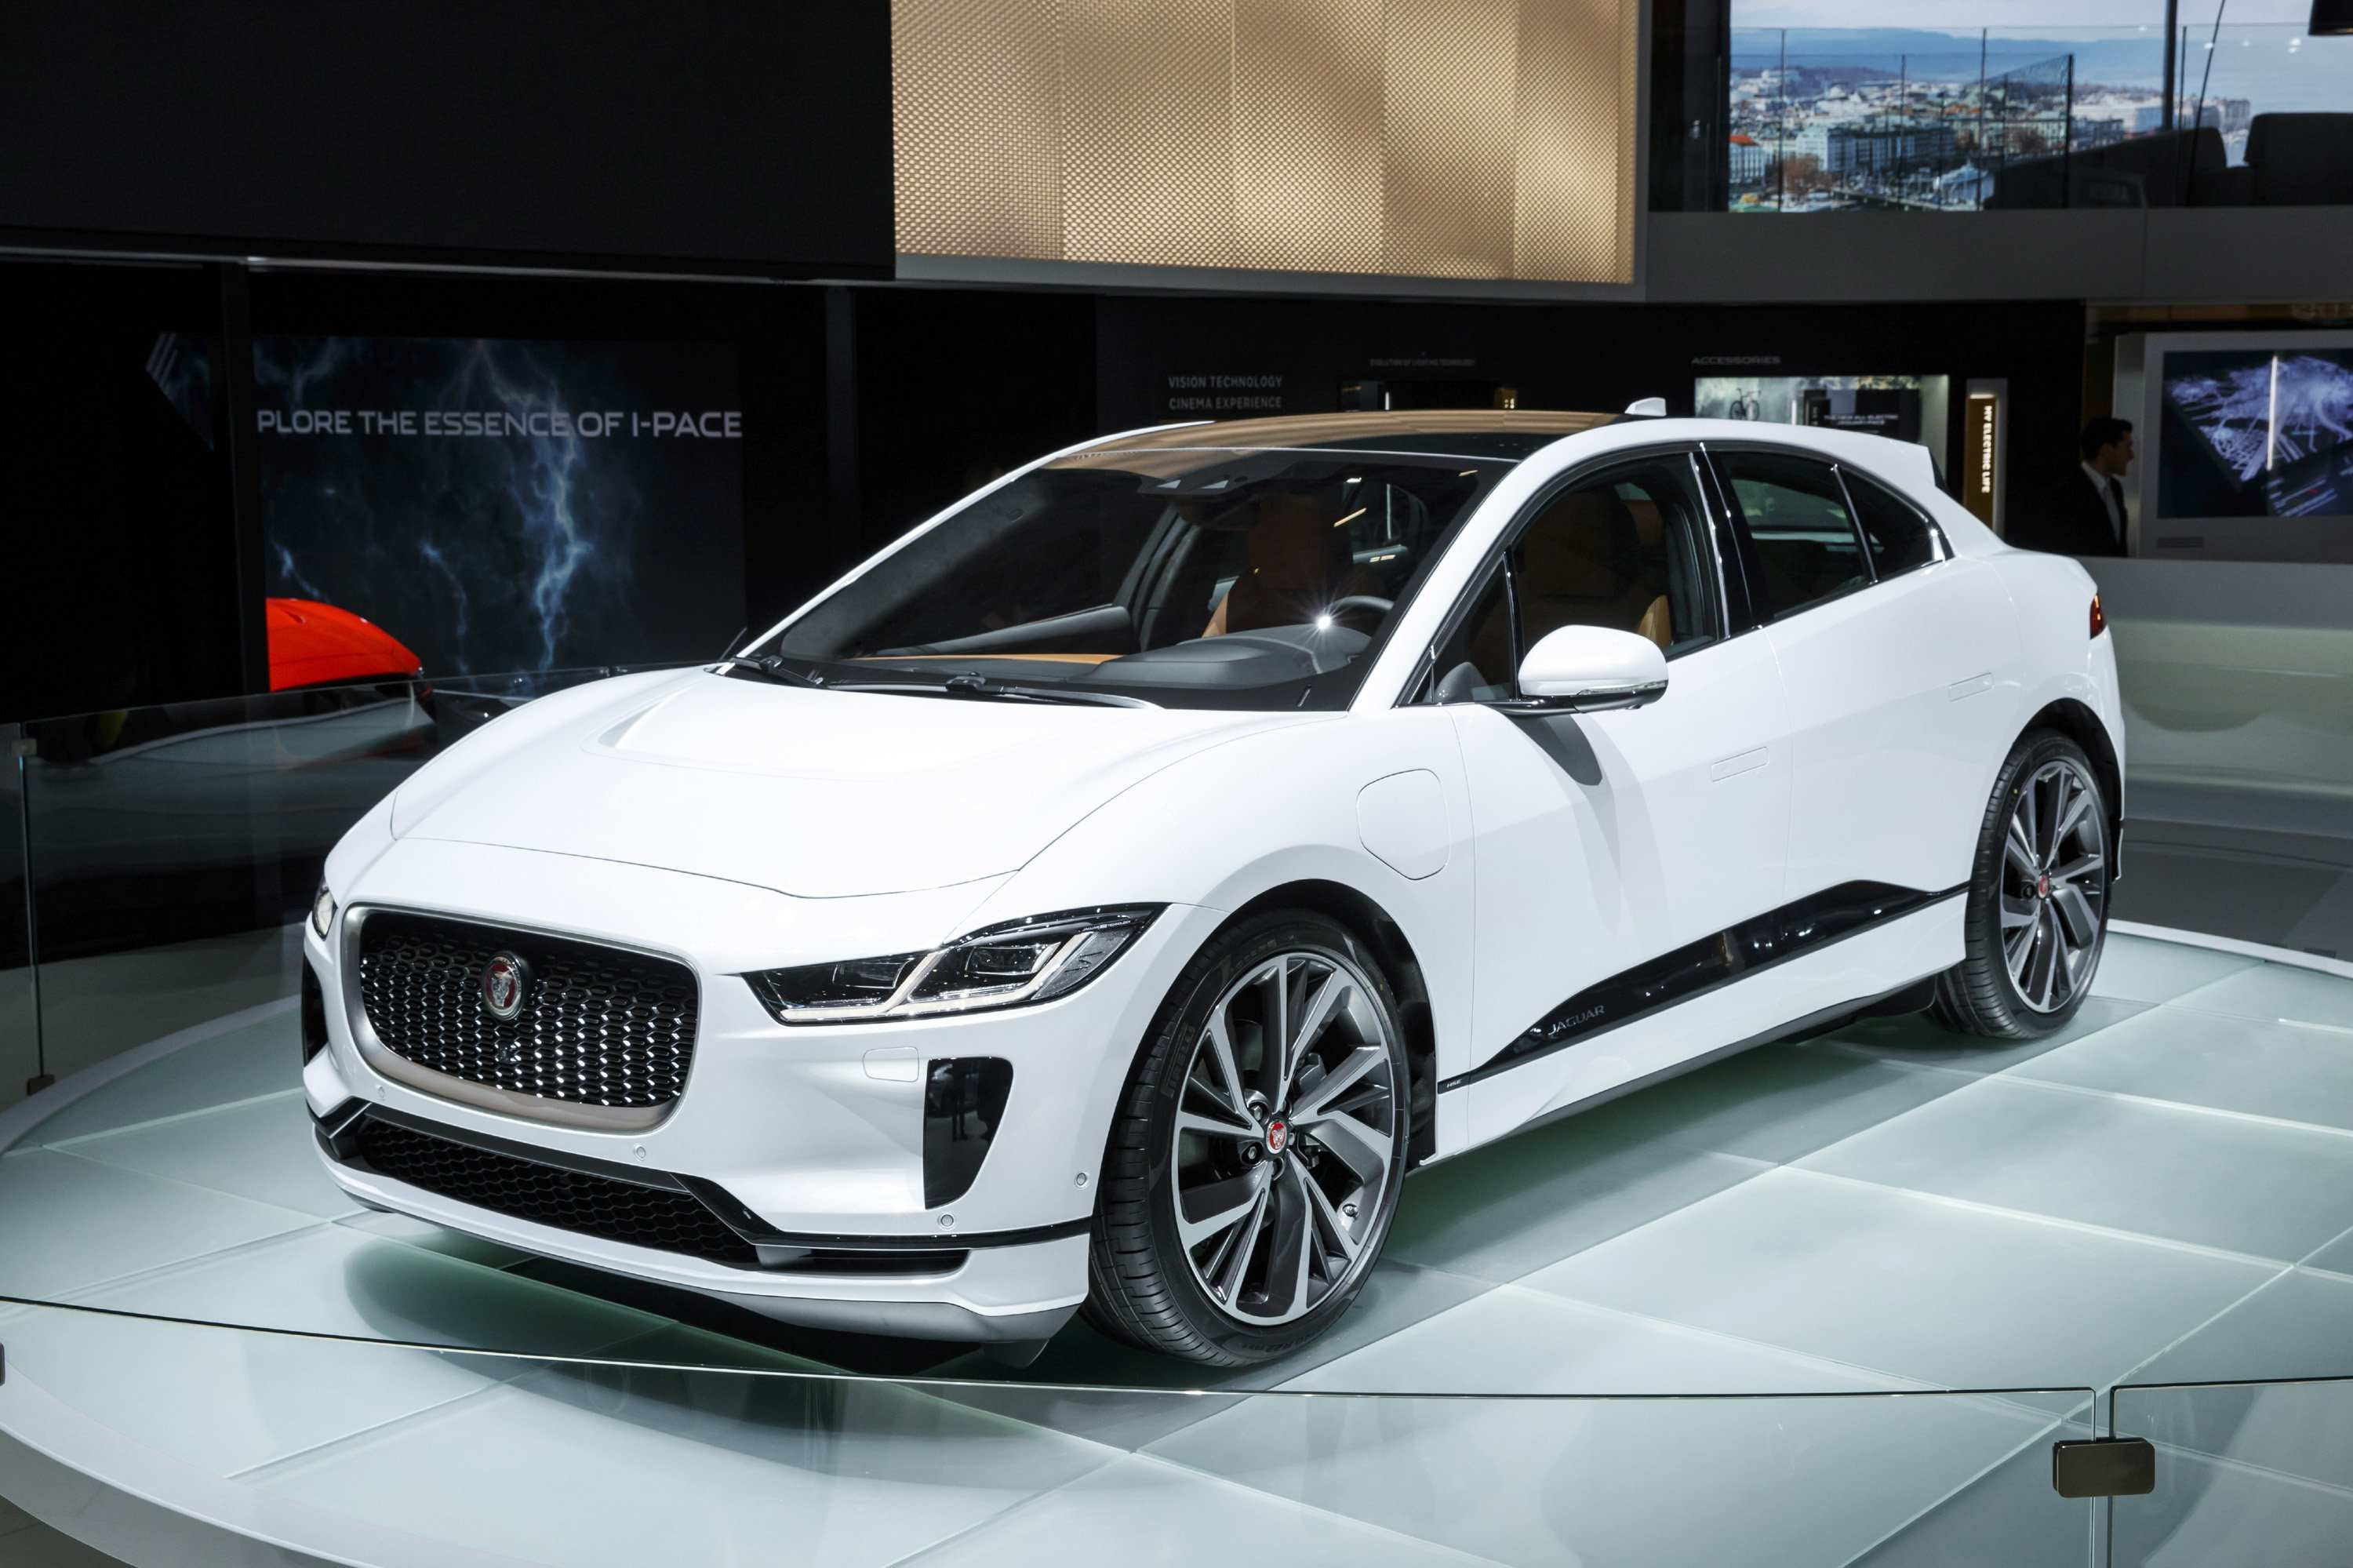 71 Gallery of 2019 Jaguar I Pace Research New by 2019 Jaguar I Pace